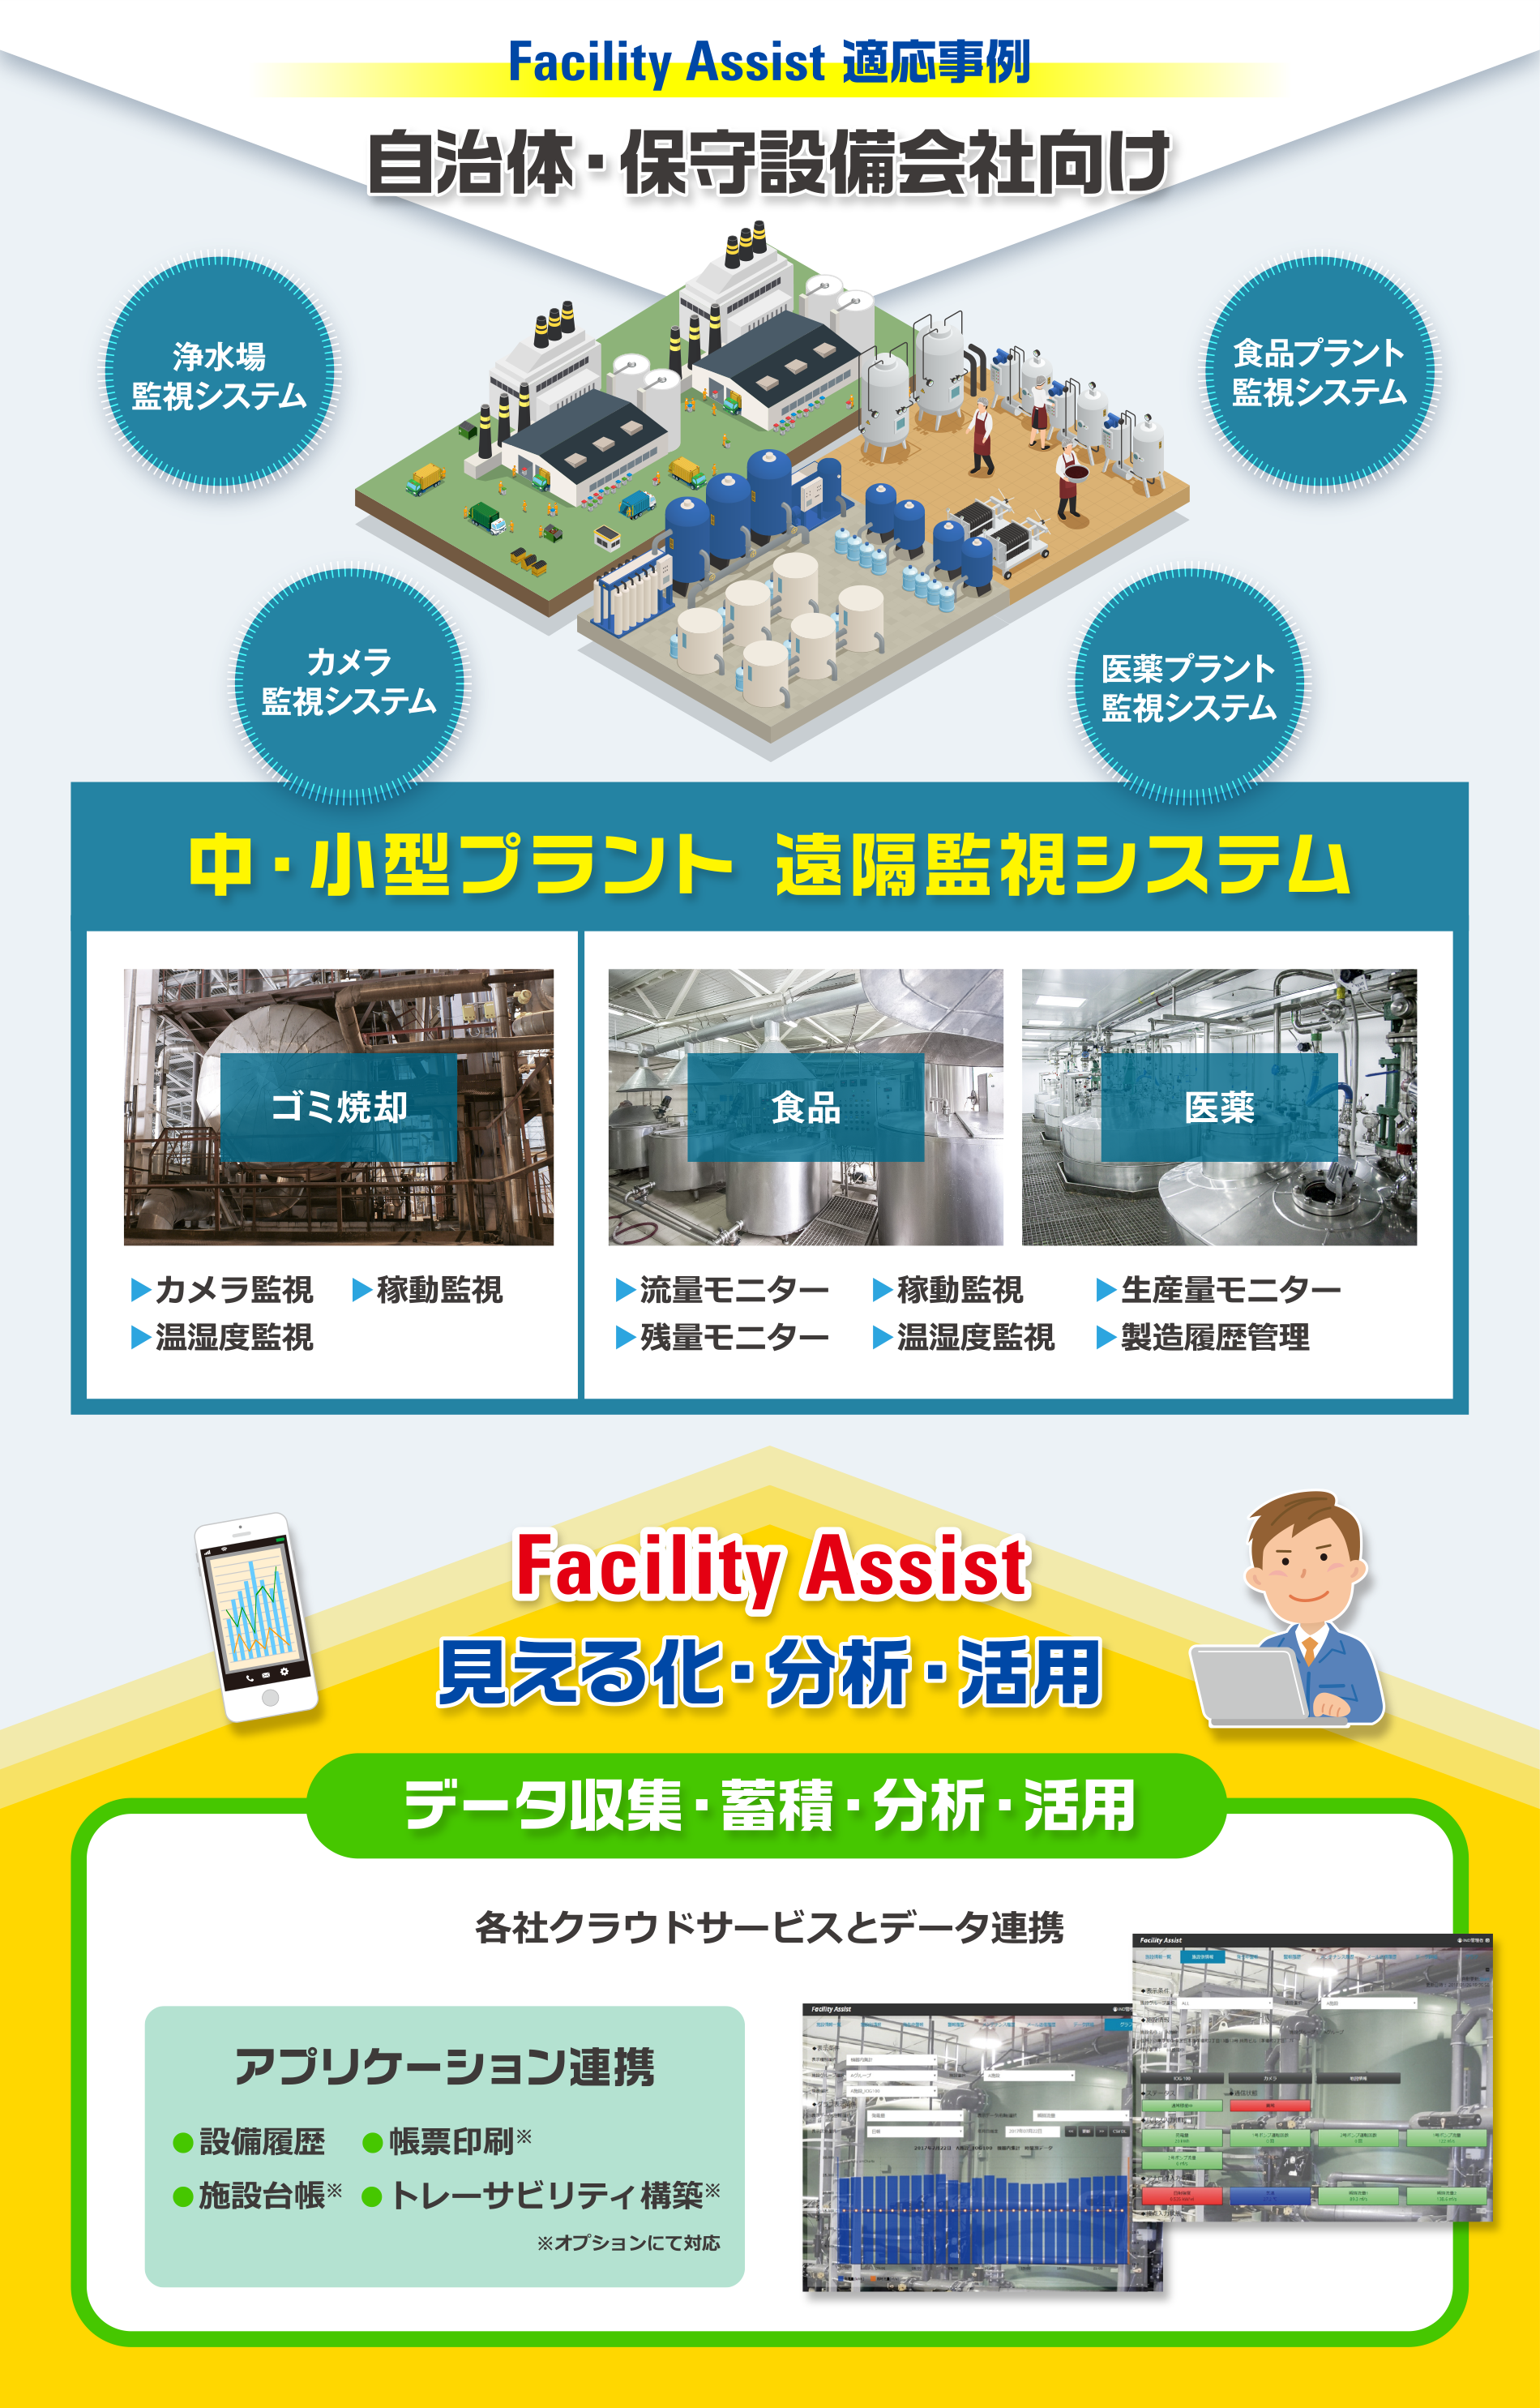 Facility Assist for SaaS適応事例/自治体・保守設備会社向け